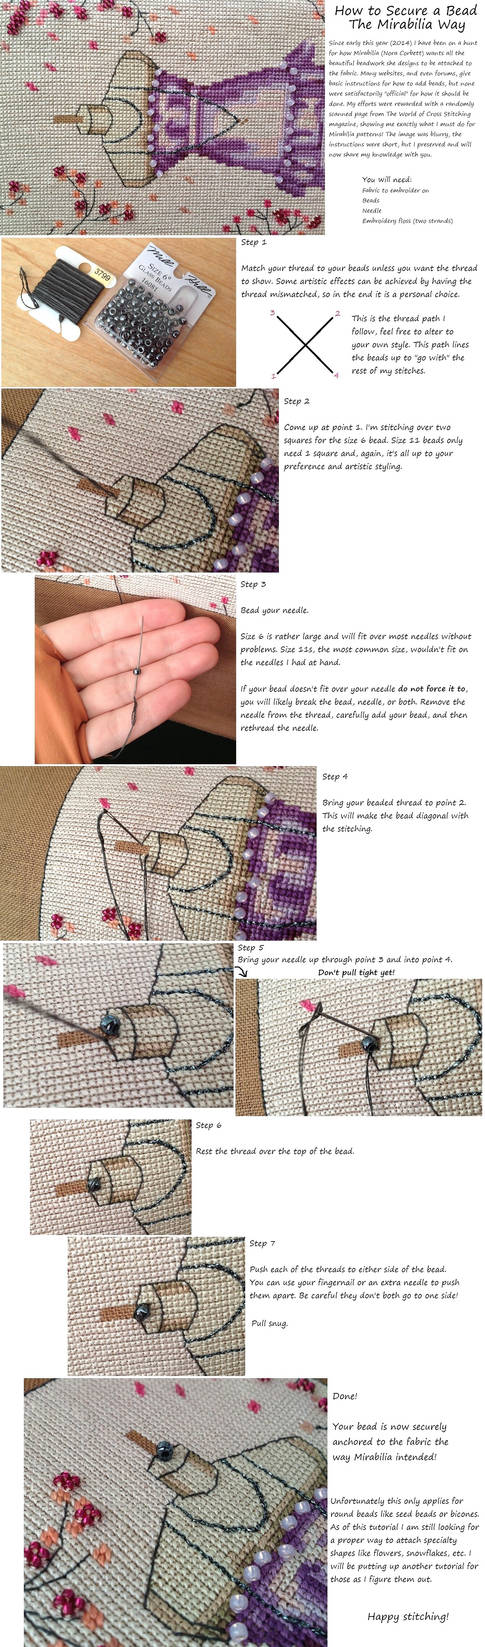 How to Embellish with Beads the Mirabilia Way by pinkythepink